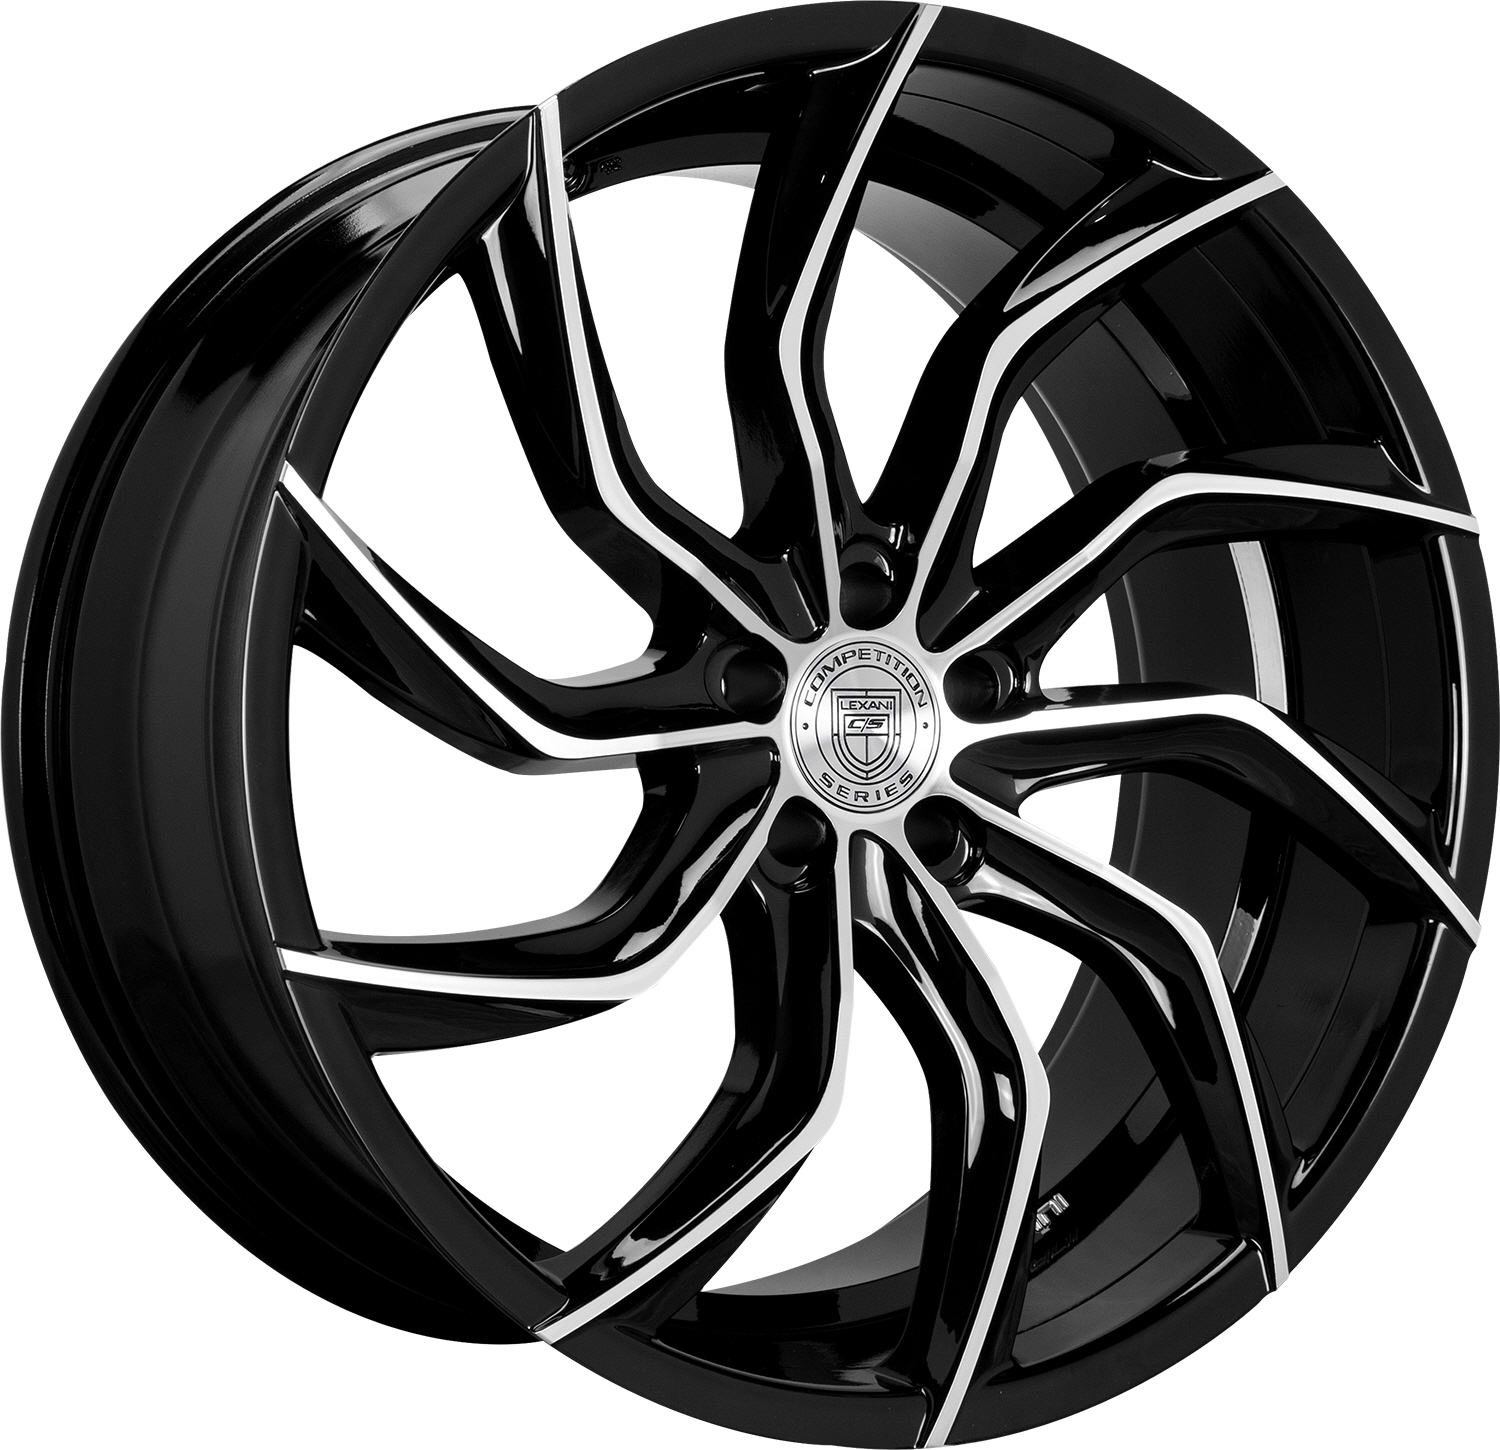 669 - MATISSE  WHEELS AND RIMS PACKAGES